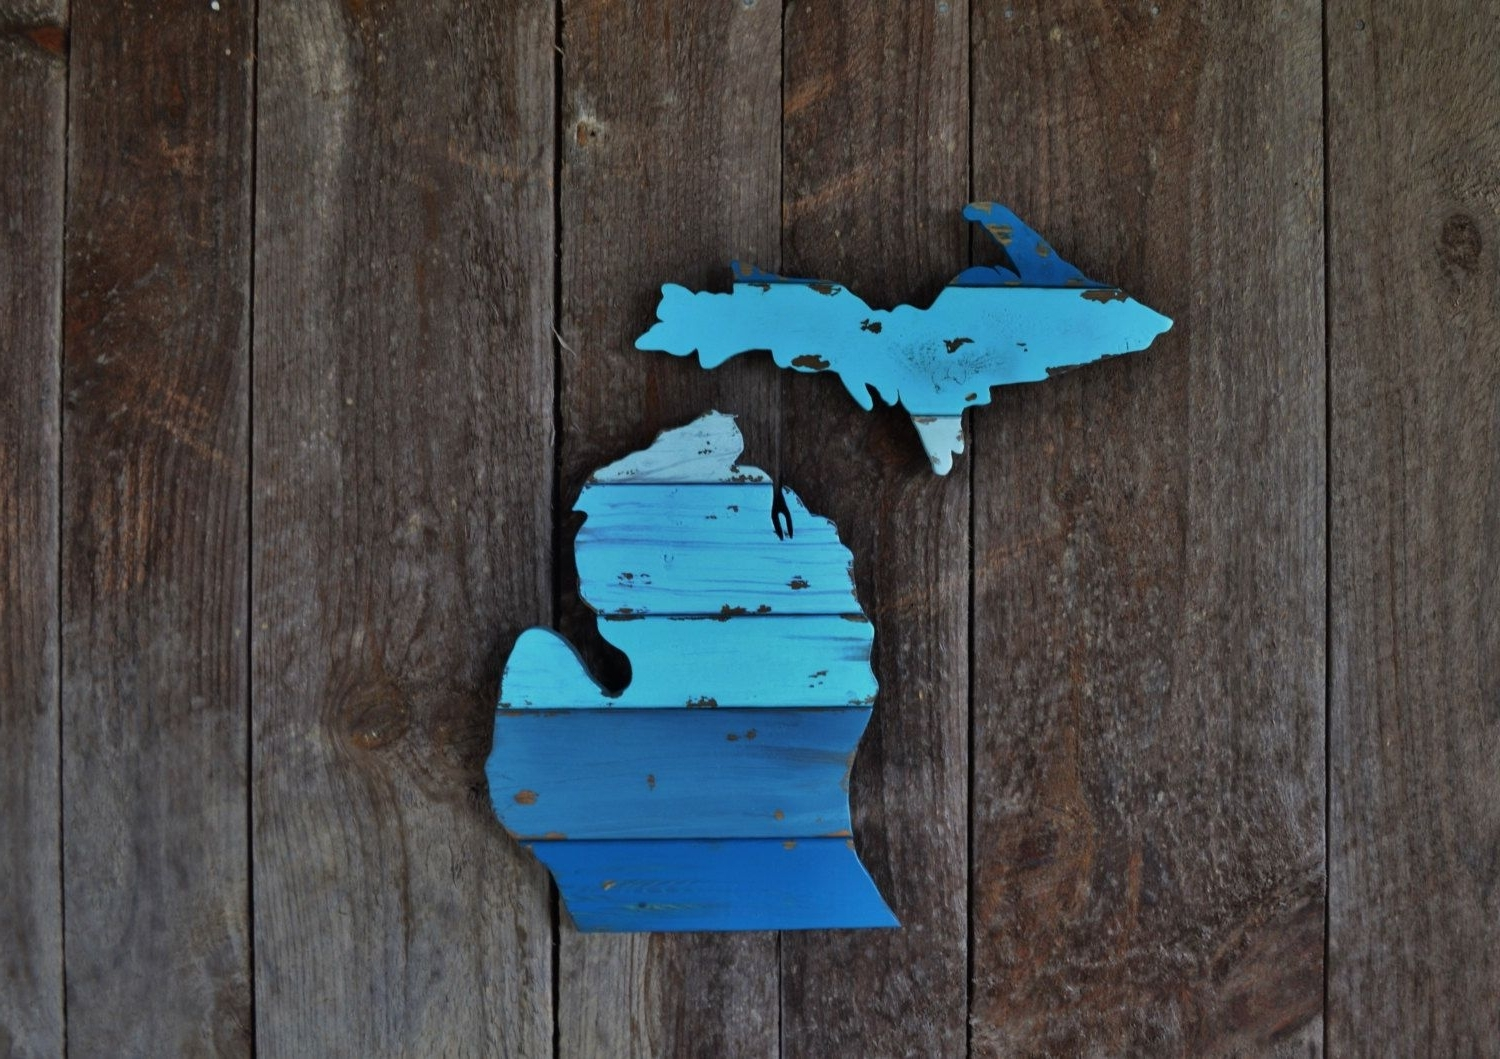 Current Hand Cut Wooden Michigan Wall Art: The Lelandthewoodnwall On Intended For Michigan Wall Art (View 12 of 15)